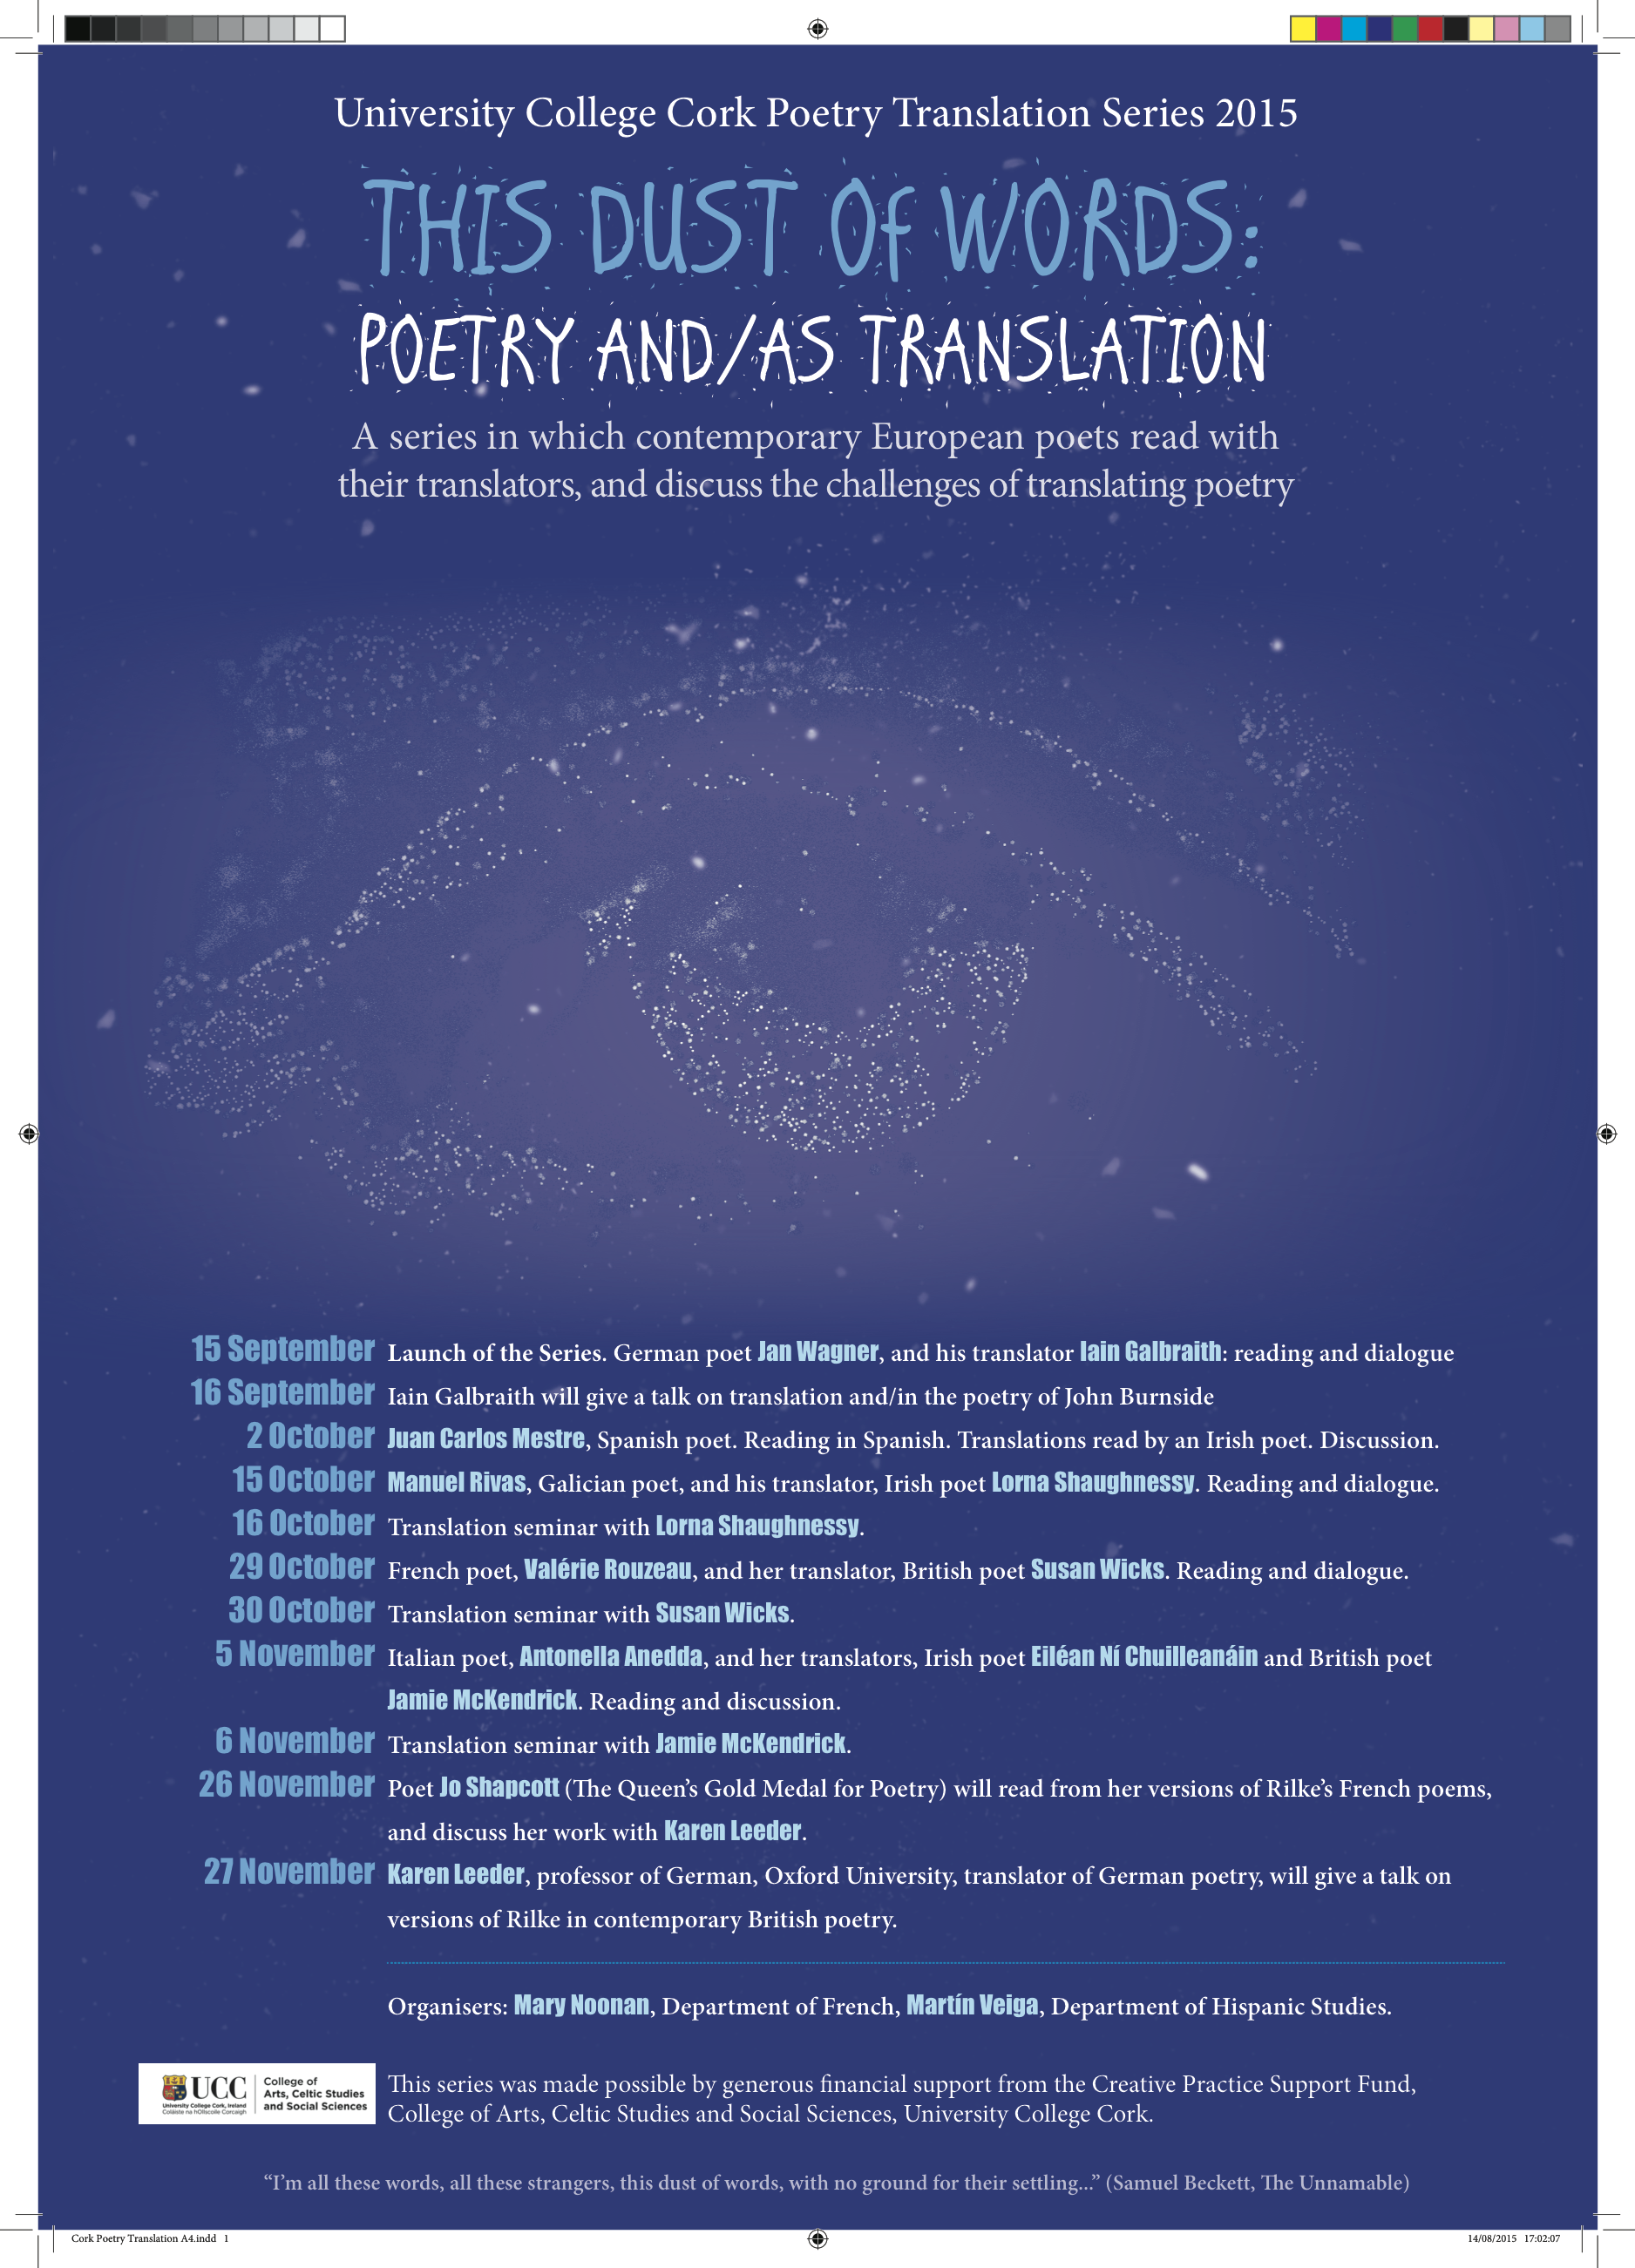 This Dust of Words: Poetry and/as Translation